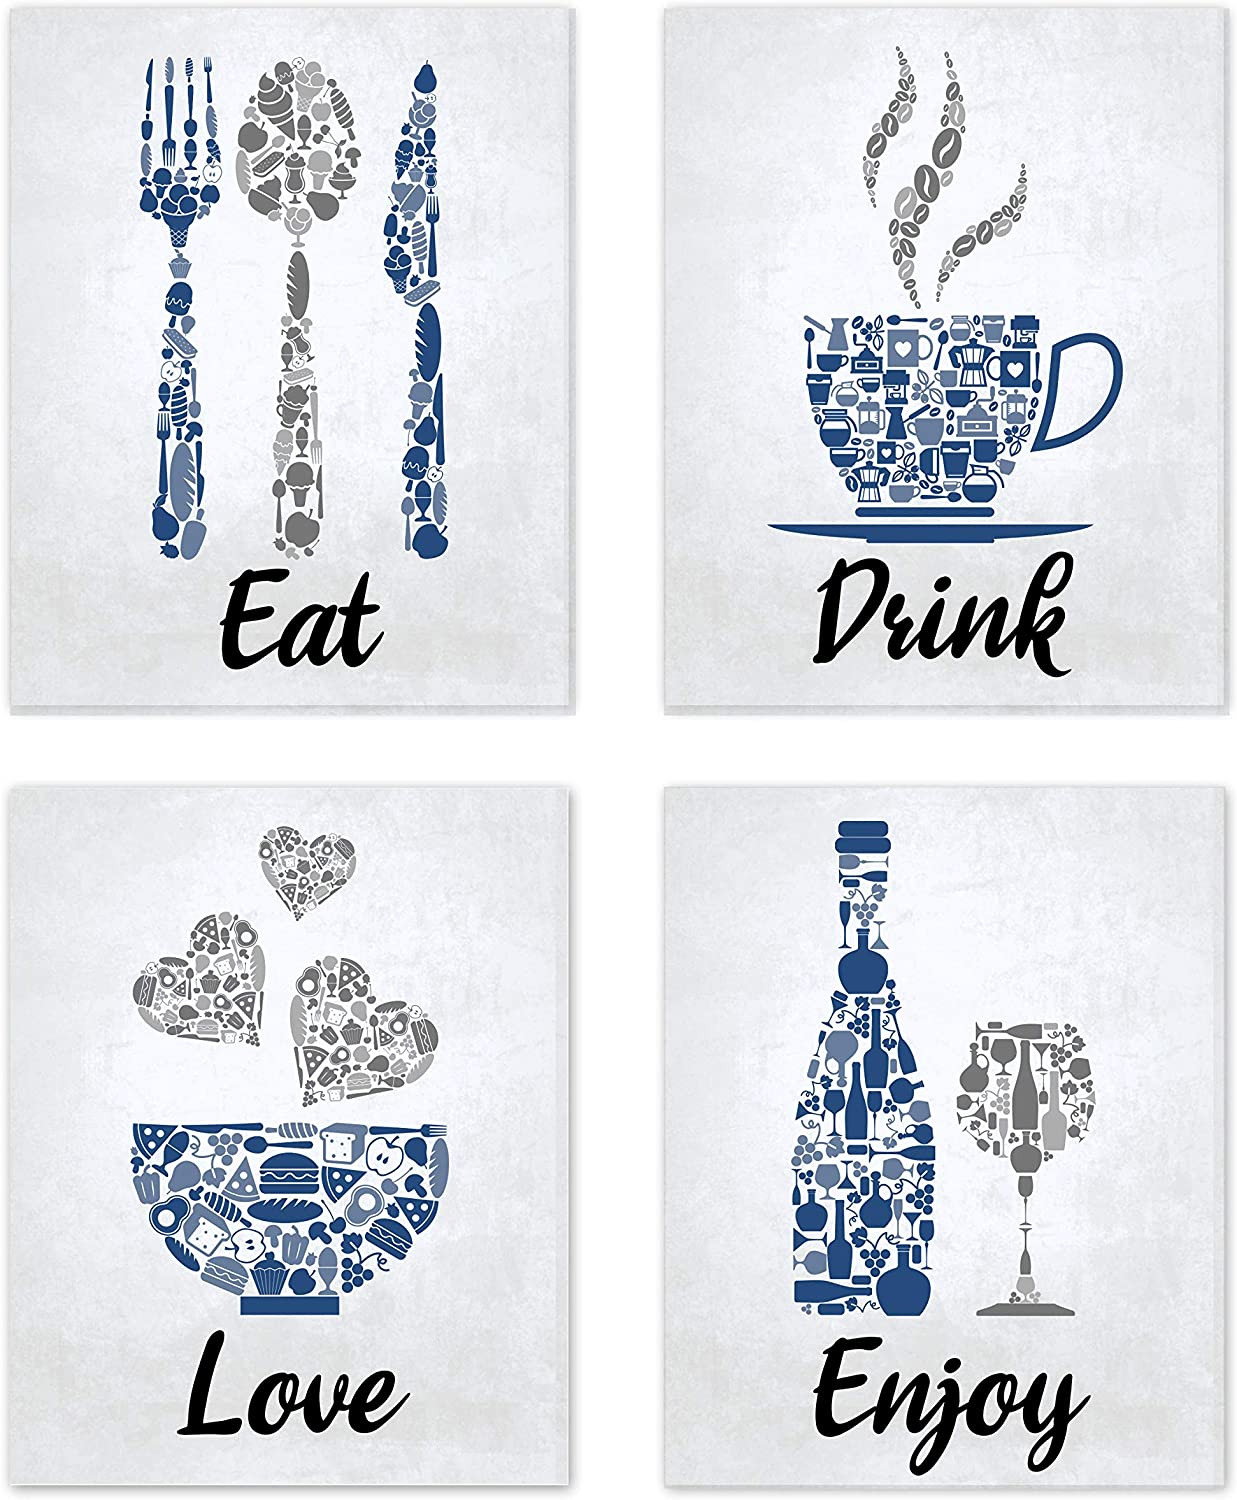 Blue Navy Cobalt Grey White Mosaic Vintage Inspirational Kitchen Restaurant Cafe Bar Wall Art Decorations Eat Drink Love Wine Coffee Hearts Prints Posters Signs Sets Rustic Farmhouse Country Home Dining Room House Decor Funny Sayings Quotes Unframed